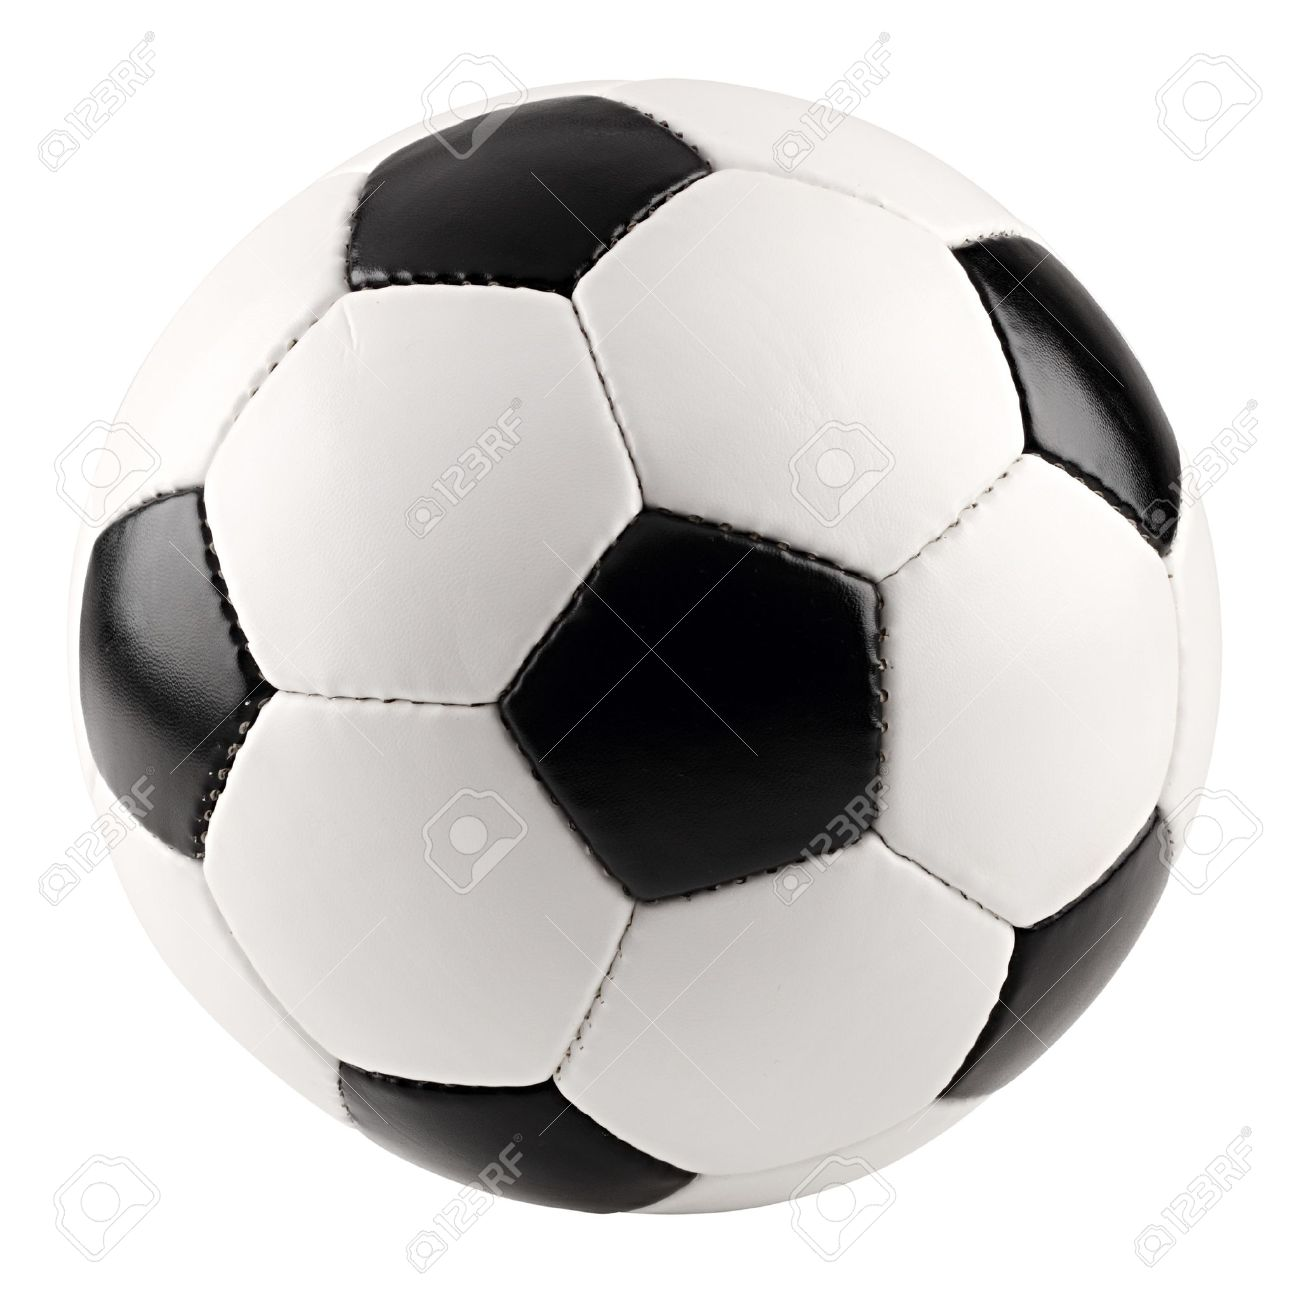 a classic black white soccer ball on white background Stock Photo - 11933351